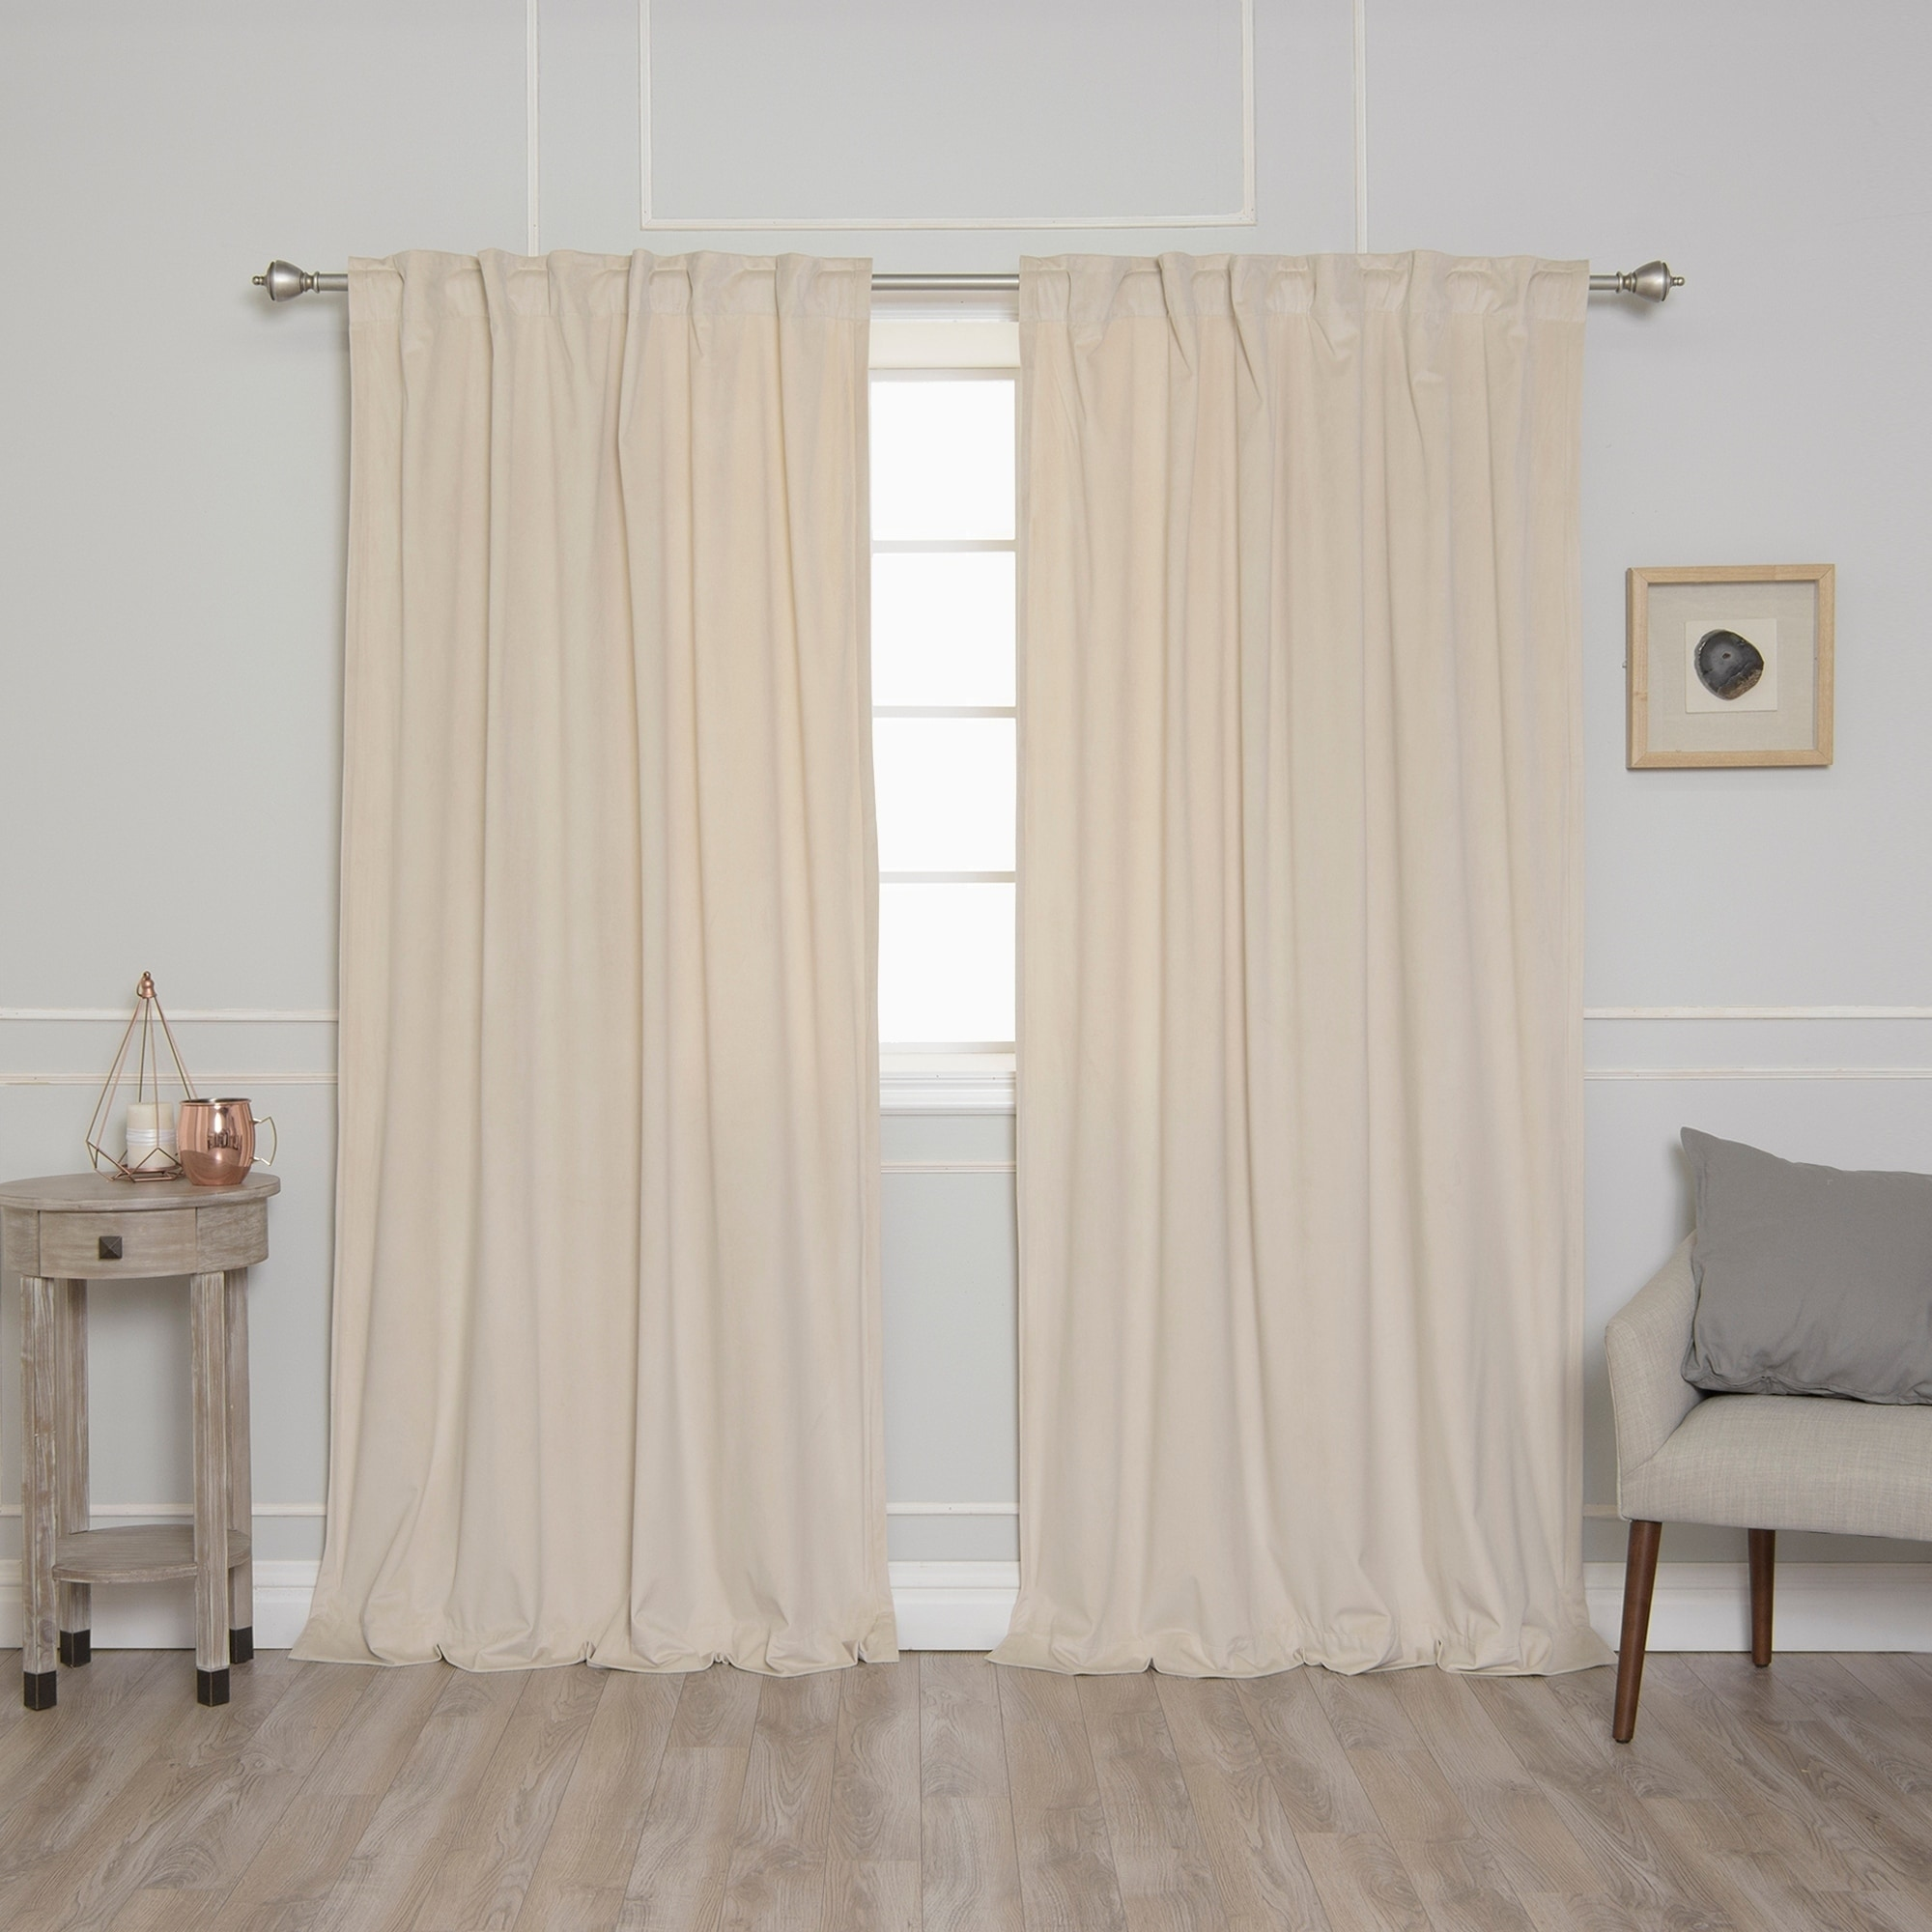 curtain green pair crush crushedet photos curtains full inspirations unbelievable ring craigslist valance kelly grey of fully eyelet bright velvet top curtainsblue gray panels lined size forest target